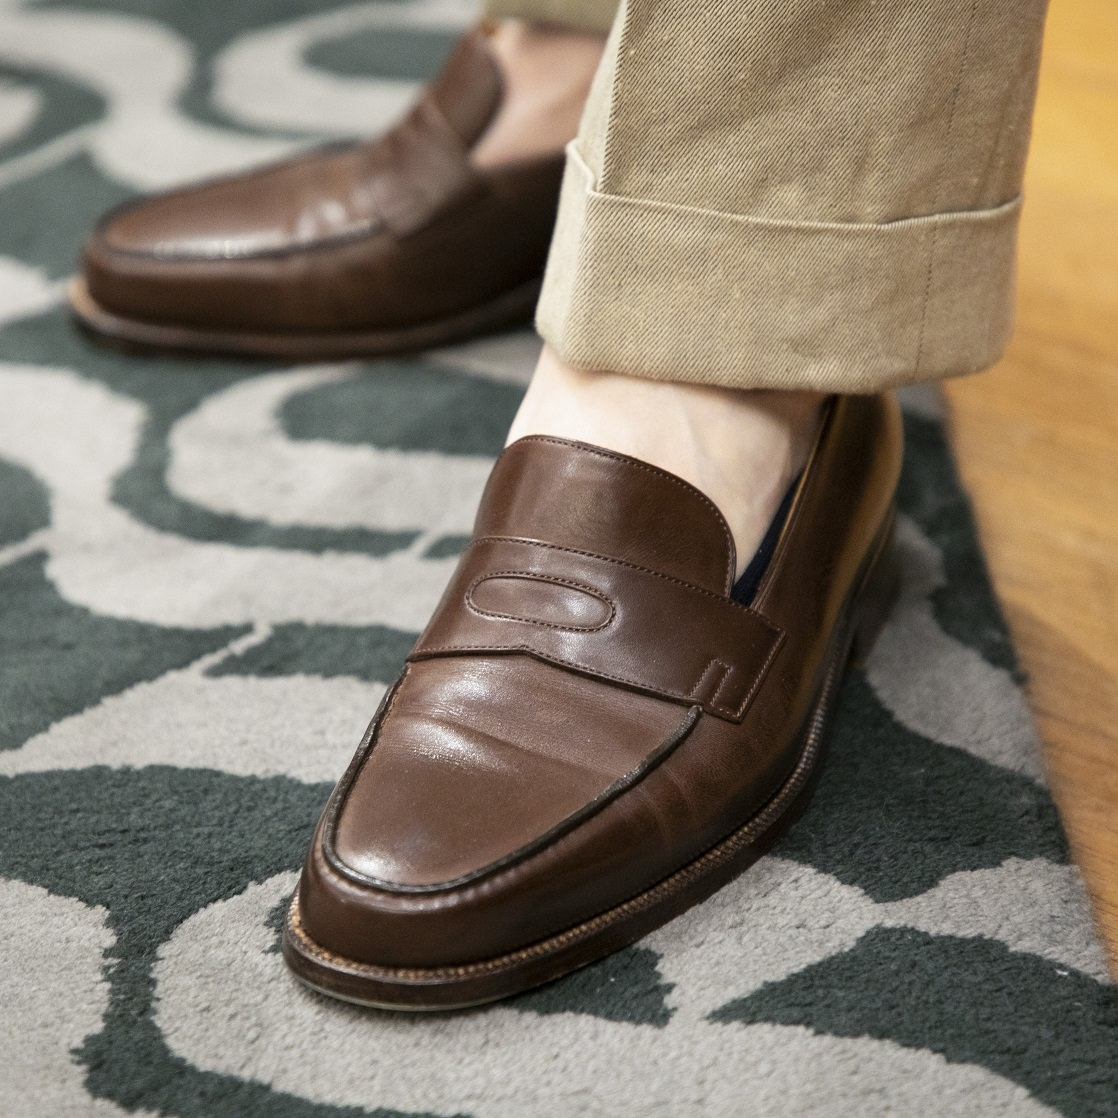 Philippe_Atienza_shoes_brown.jpg